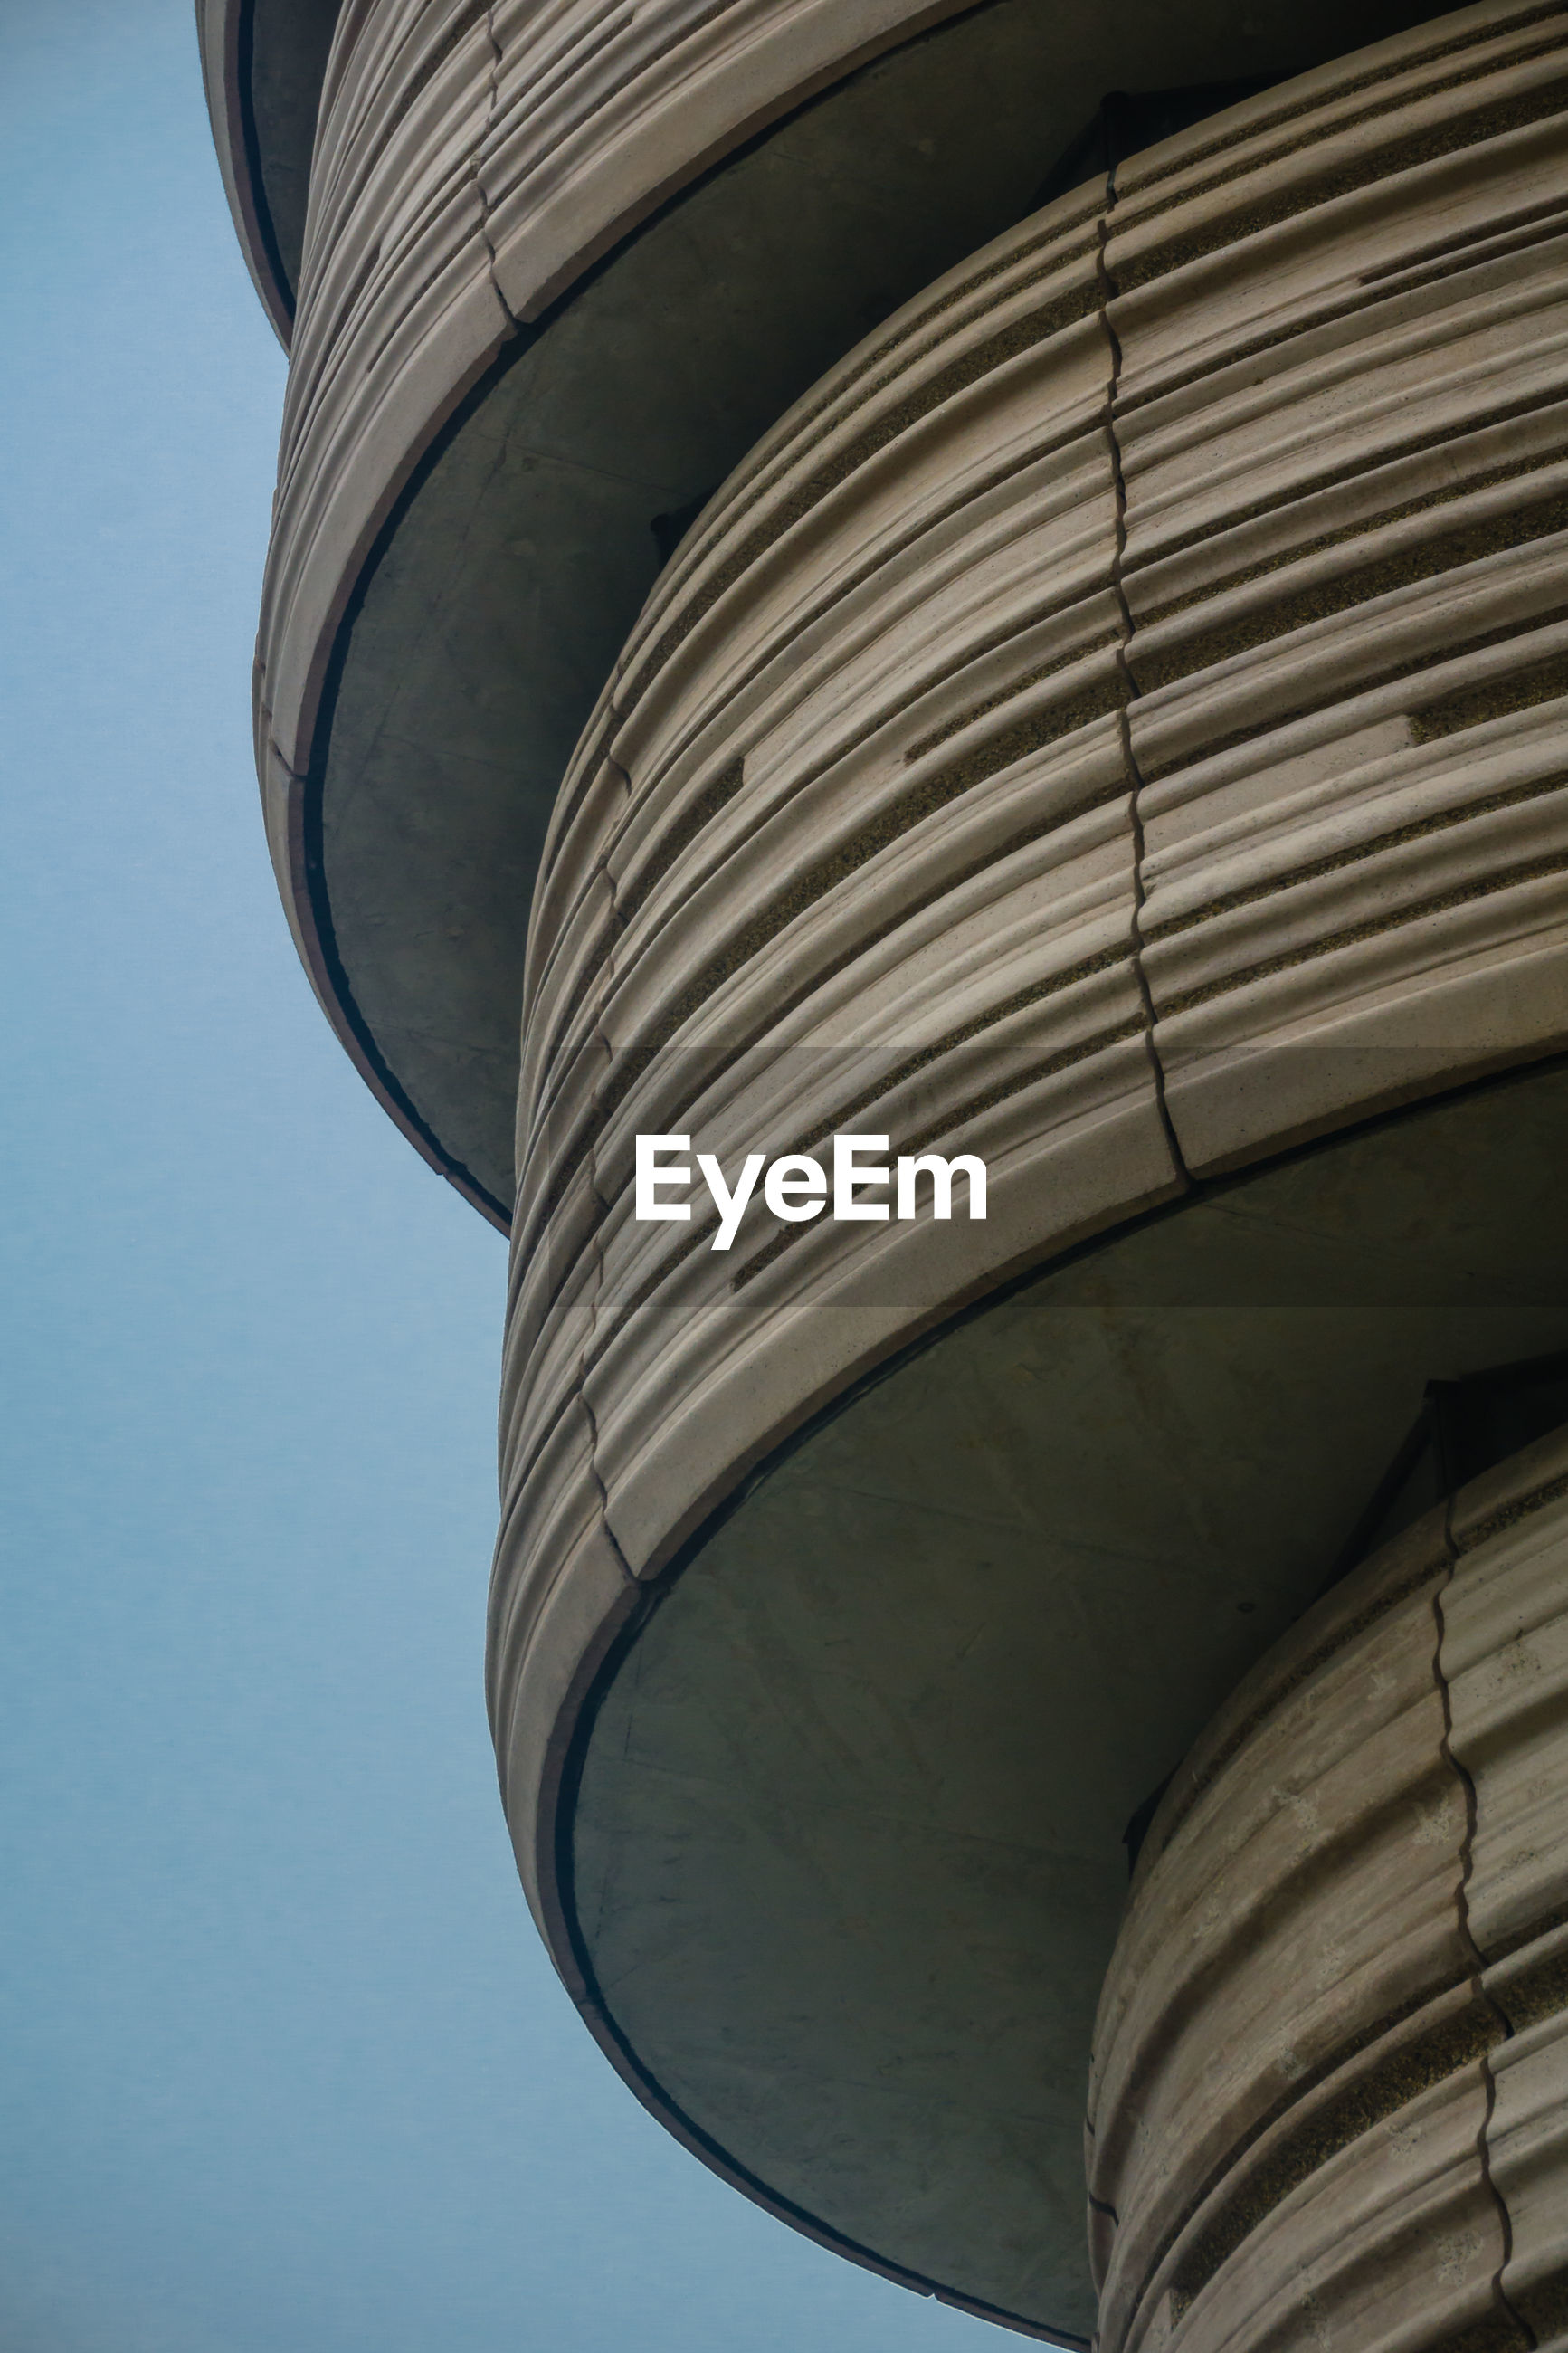 LOW ANGLE VIEW OF WATER TOWER AGAINST SKY SEEN FROM BUILDING